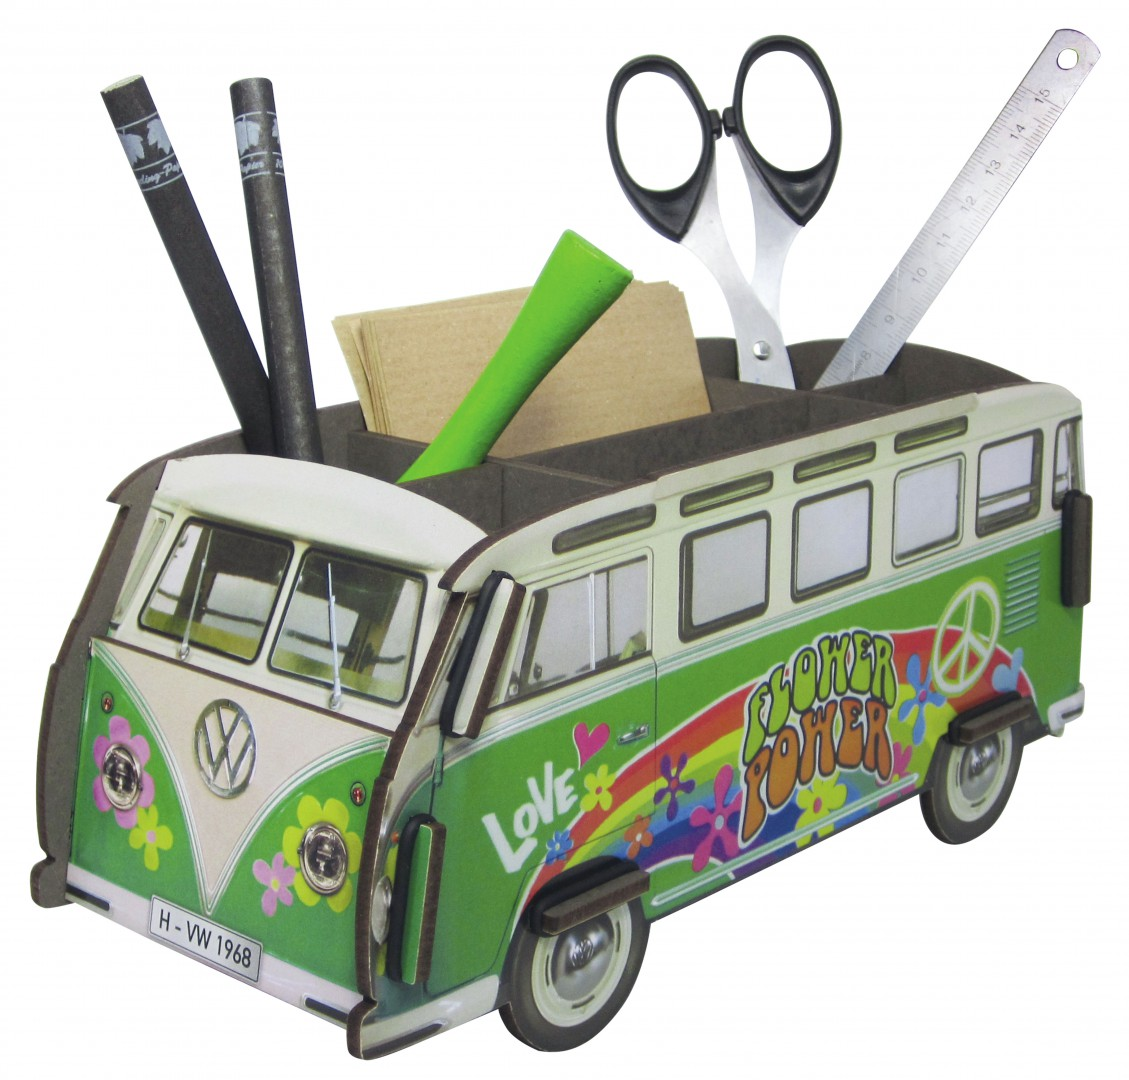 biokinder stiftebox vw bus hippie werkhaus. Black Bedroom Furniture Sets. Home Design Ideas